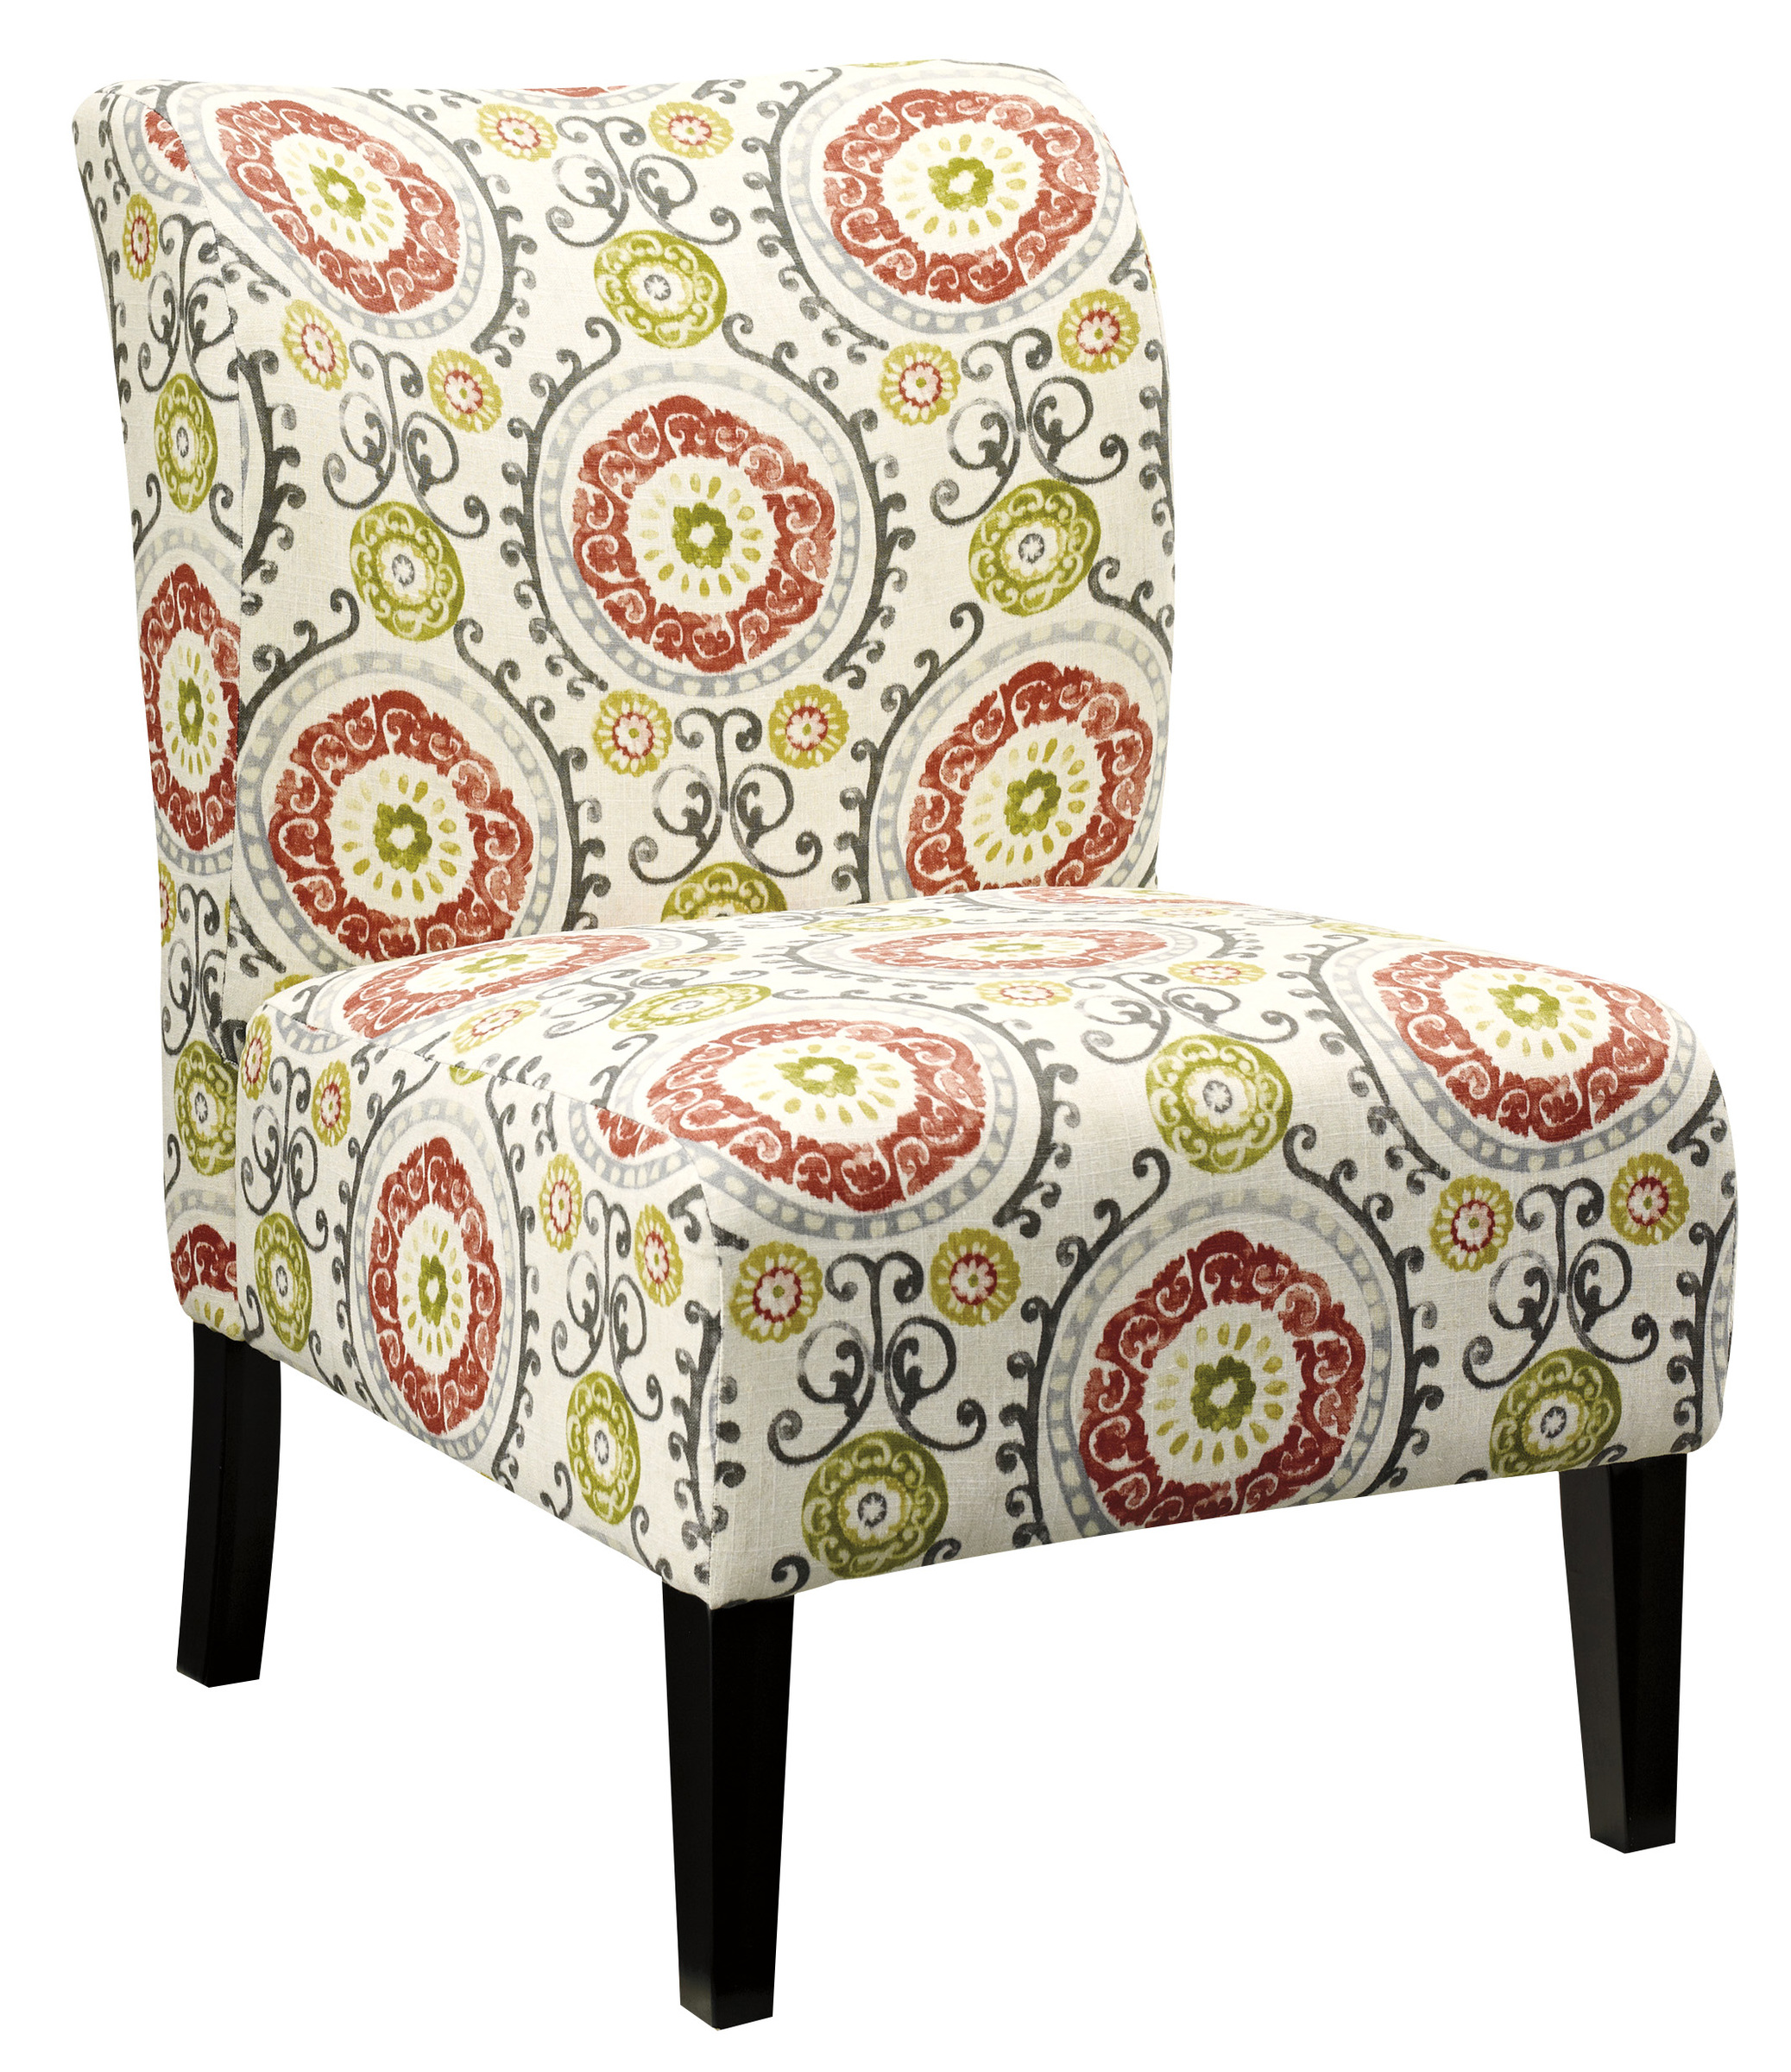 Accent Chair 53302-60-SW.jpg